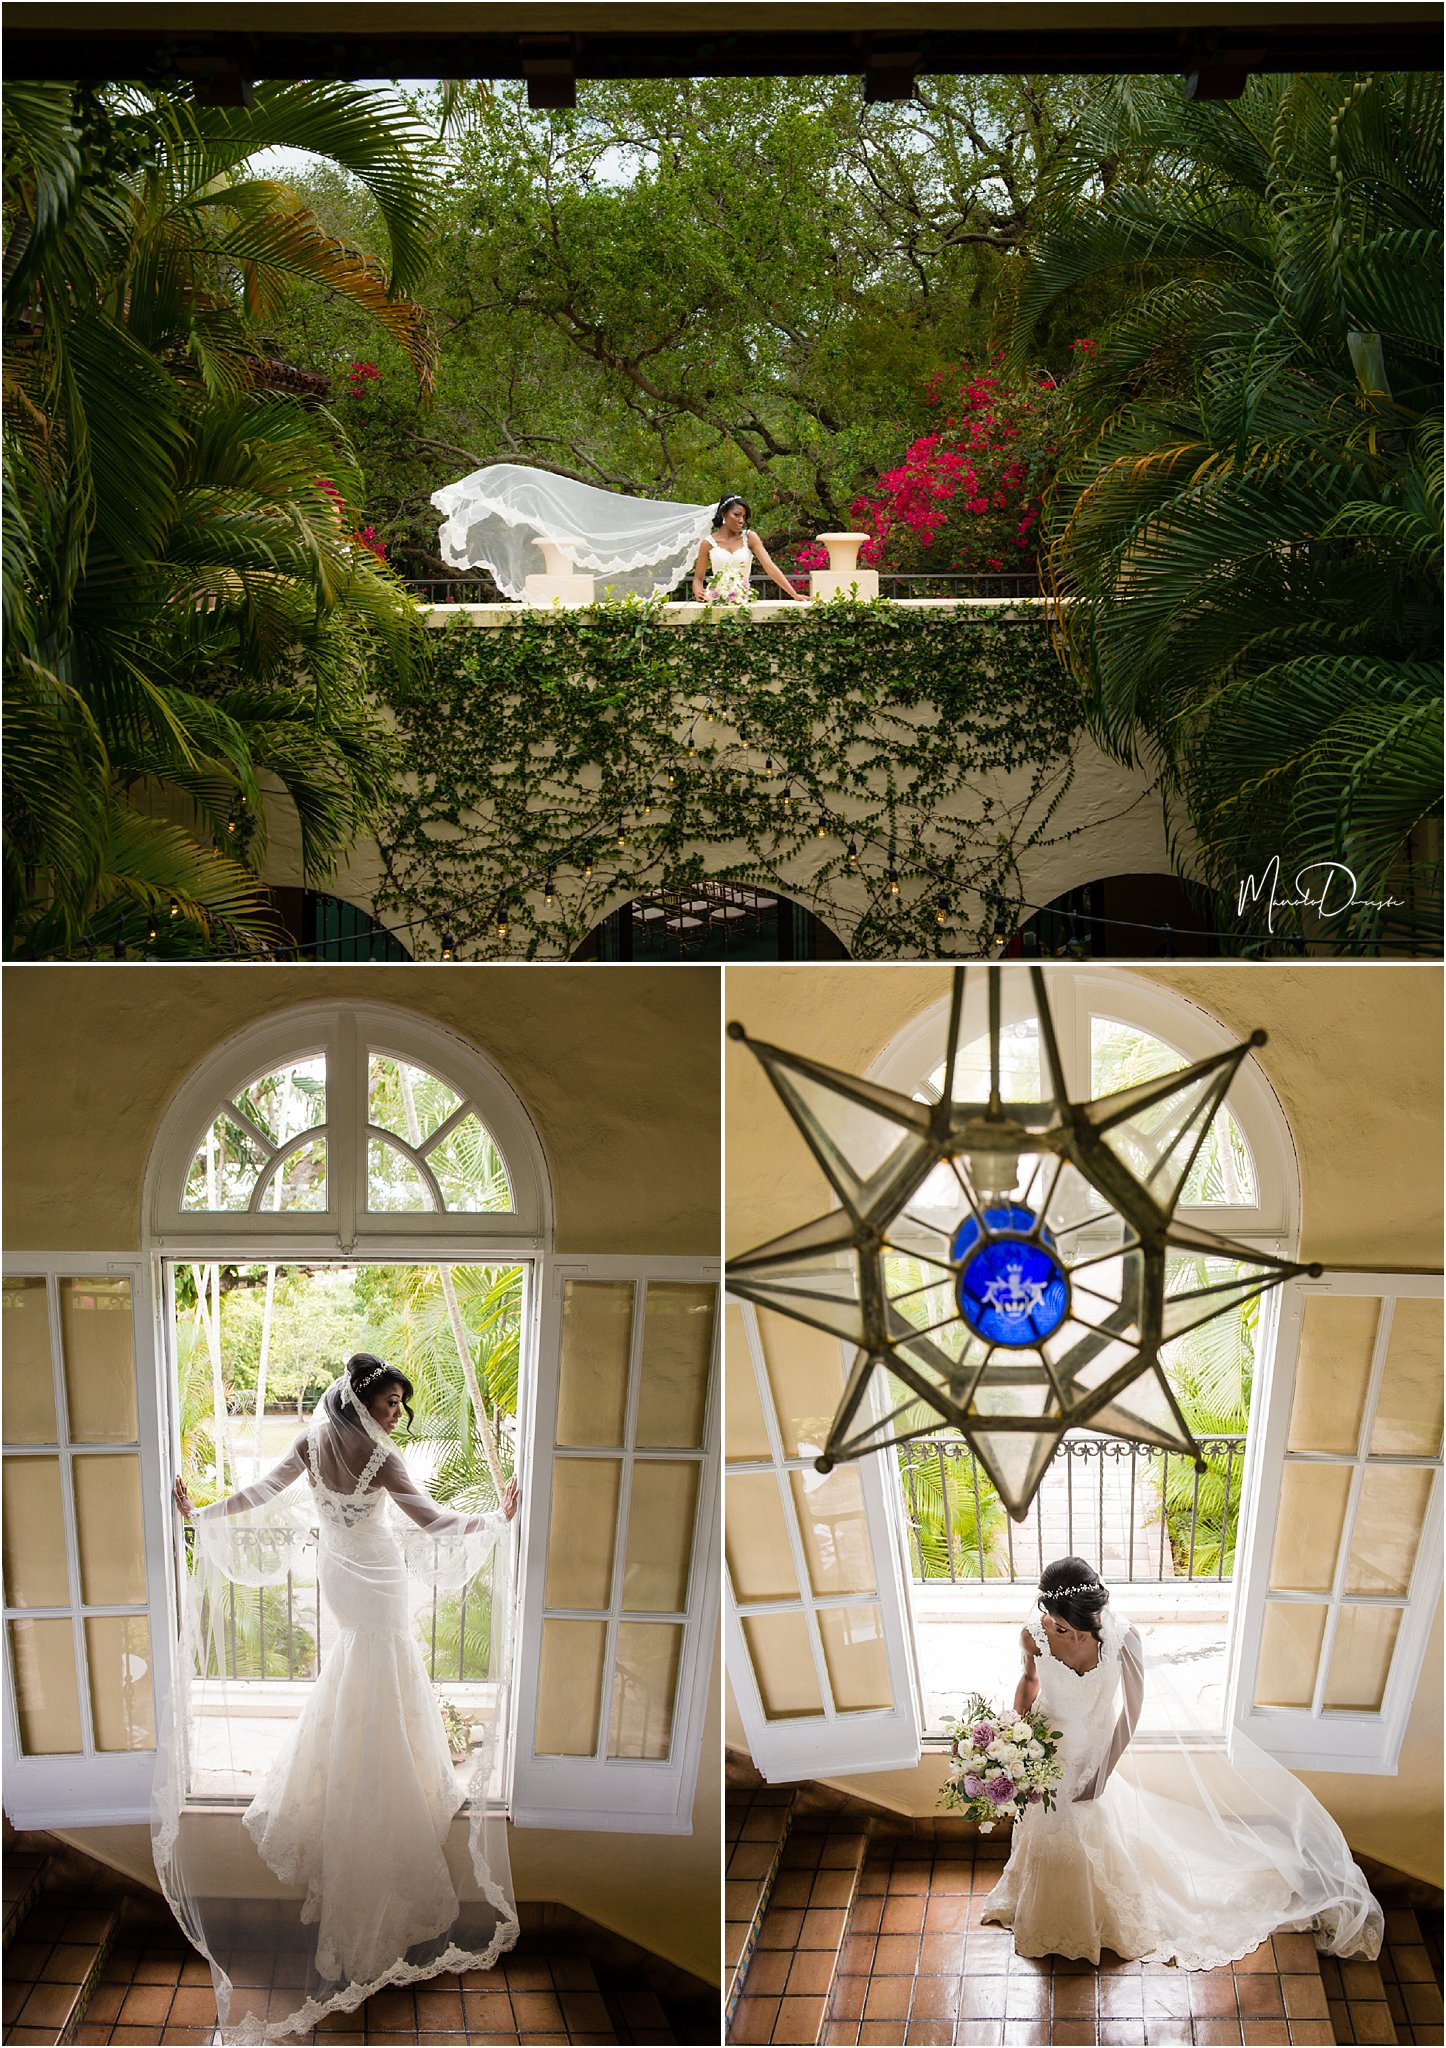 0634_ManoloDoreste_InFocusStudios_Wedding_Family_Photography_Miami_MiamiPhotographer.jpg